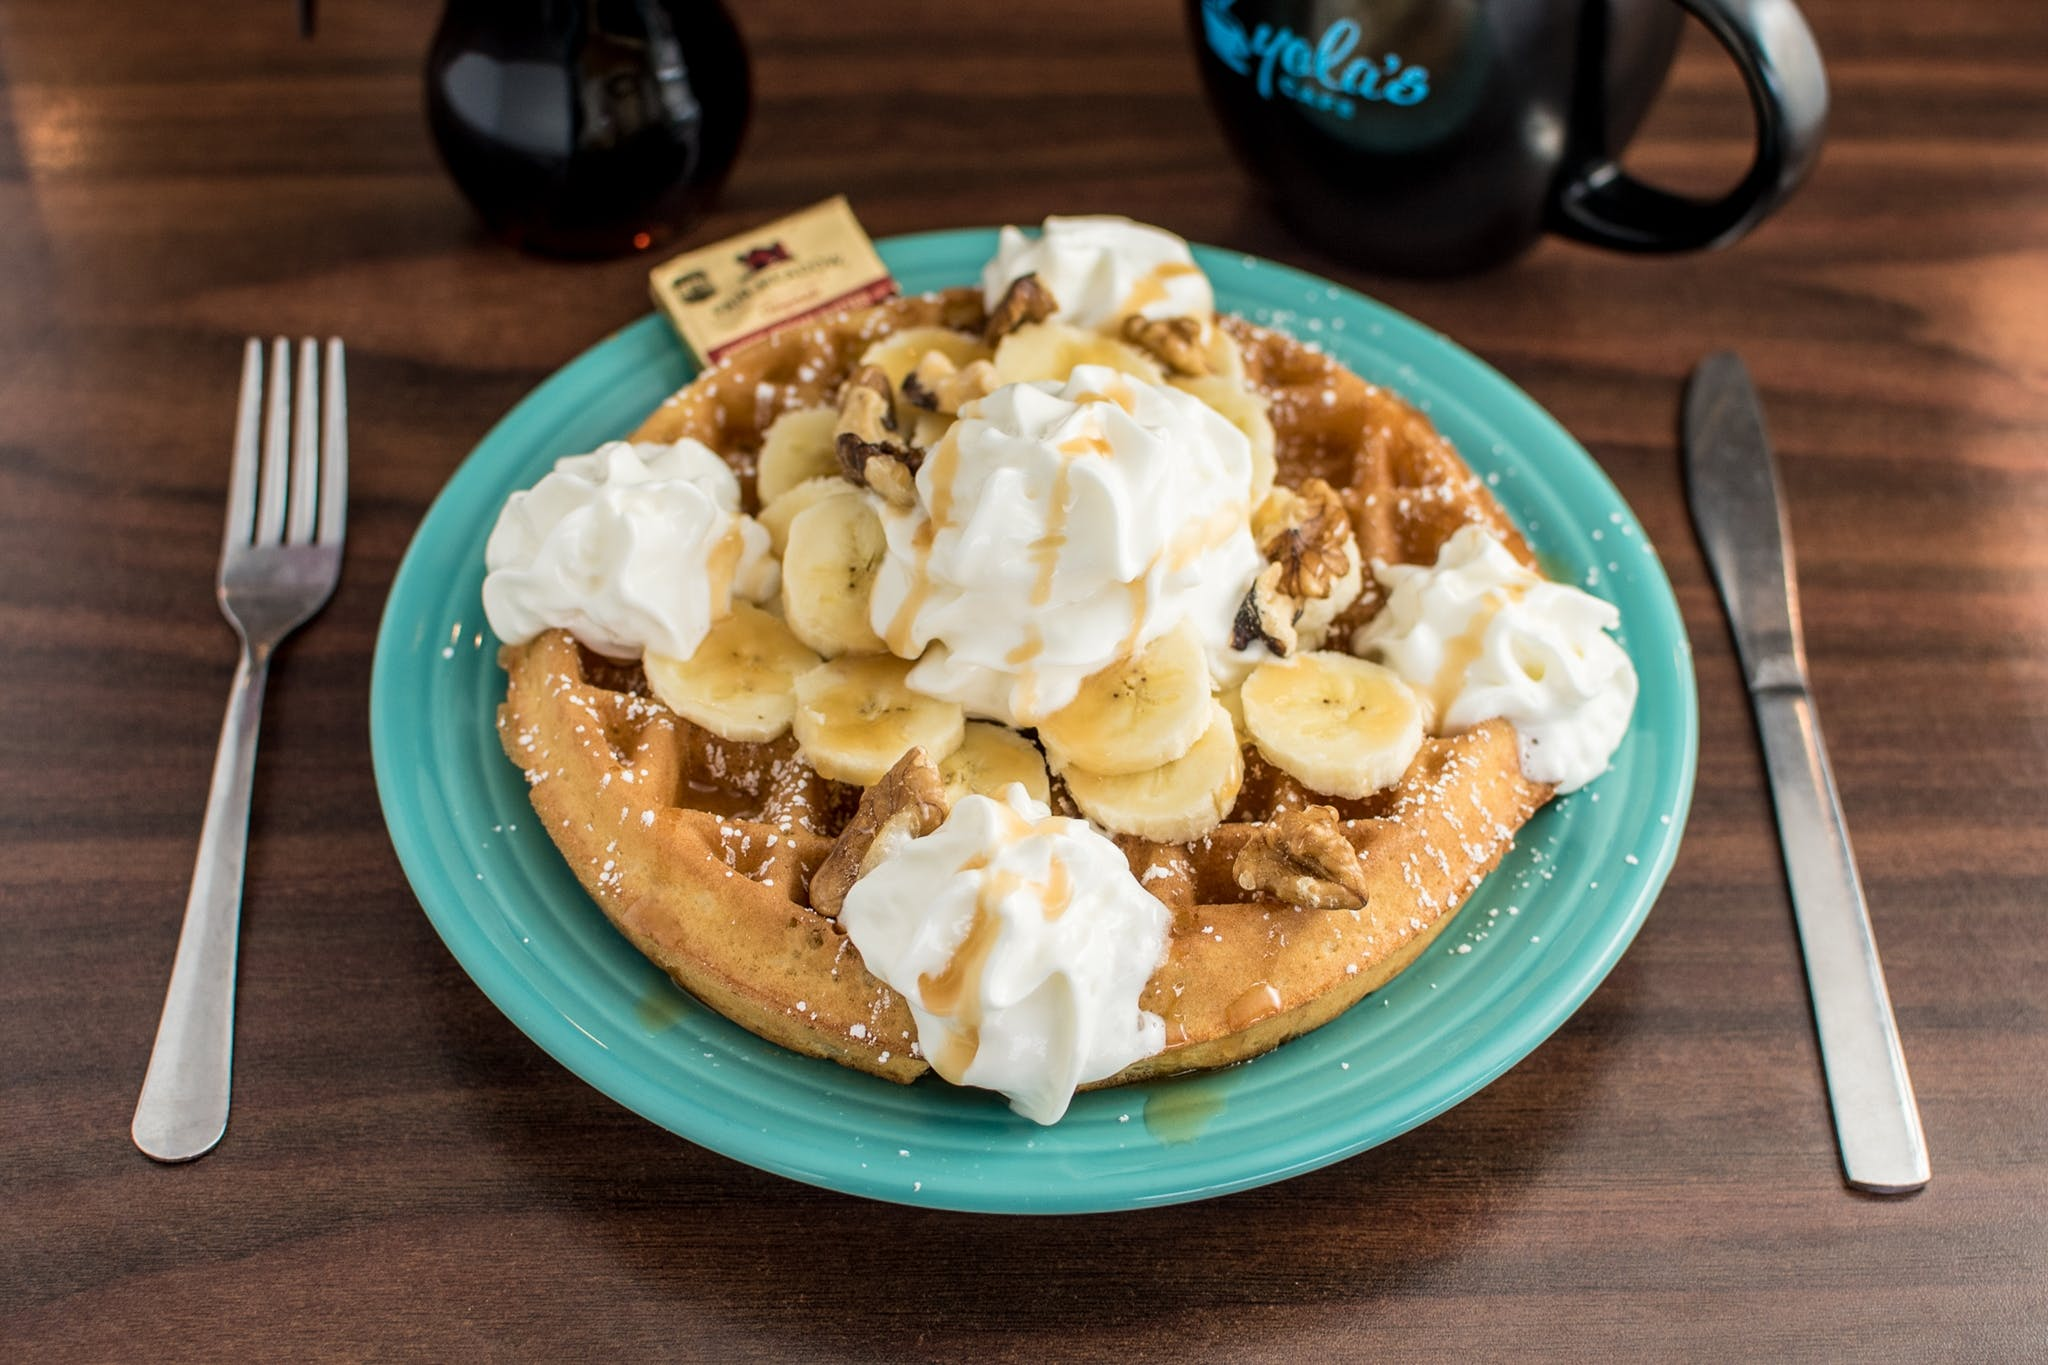 Nutty Banana Waffle (N) from Yola's Cafe in Madison, WI